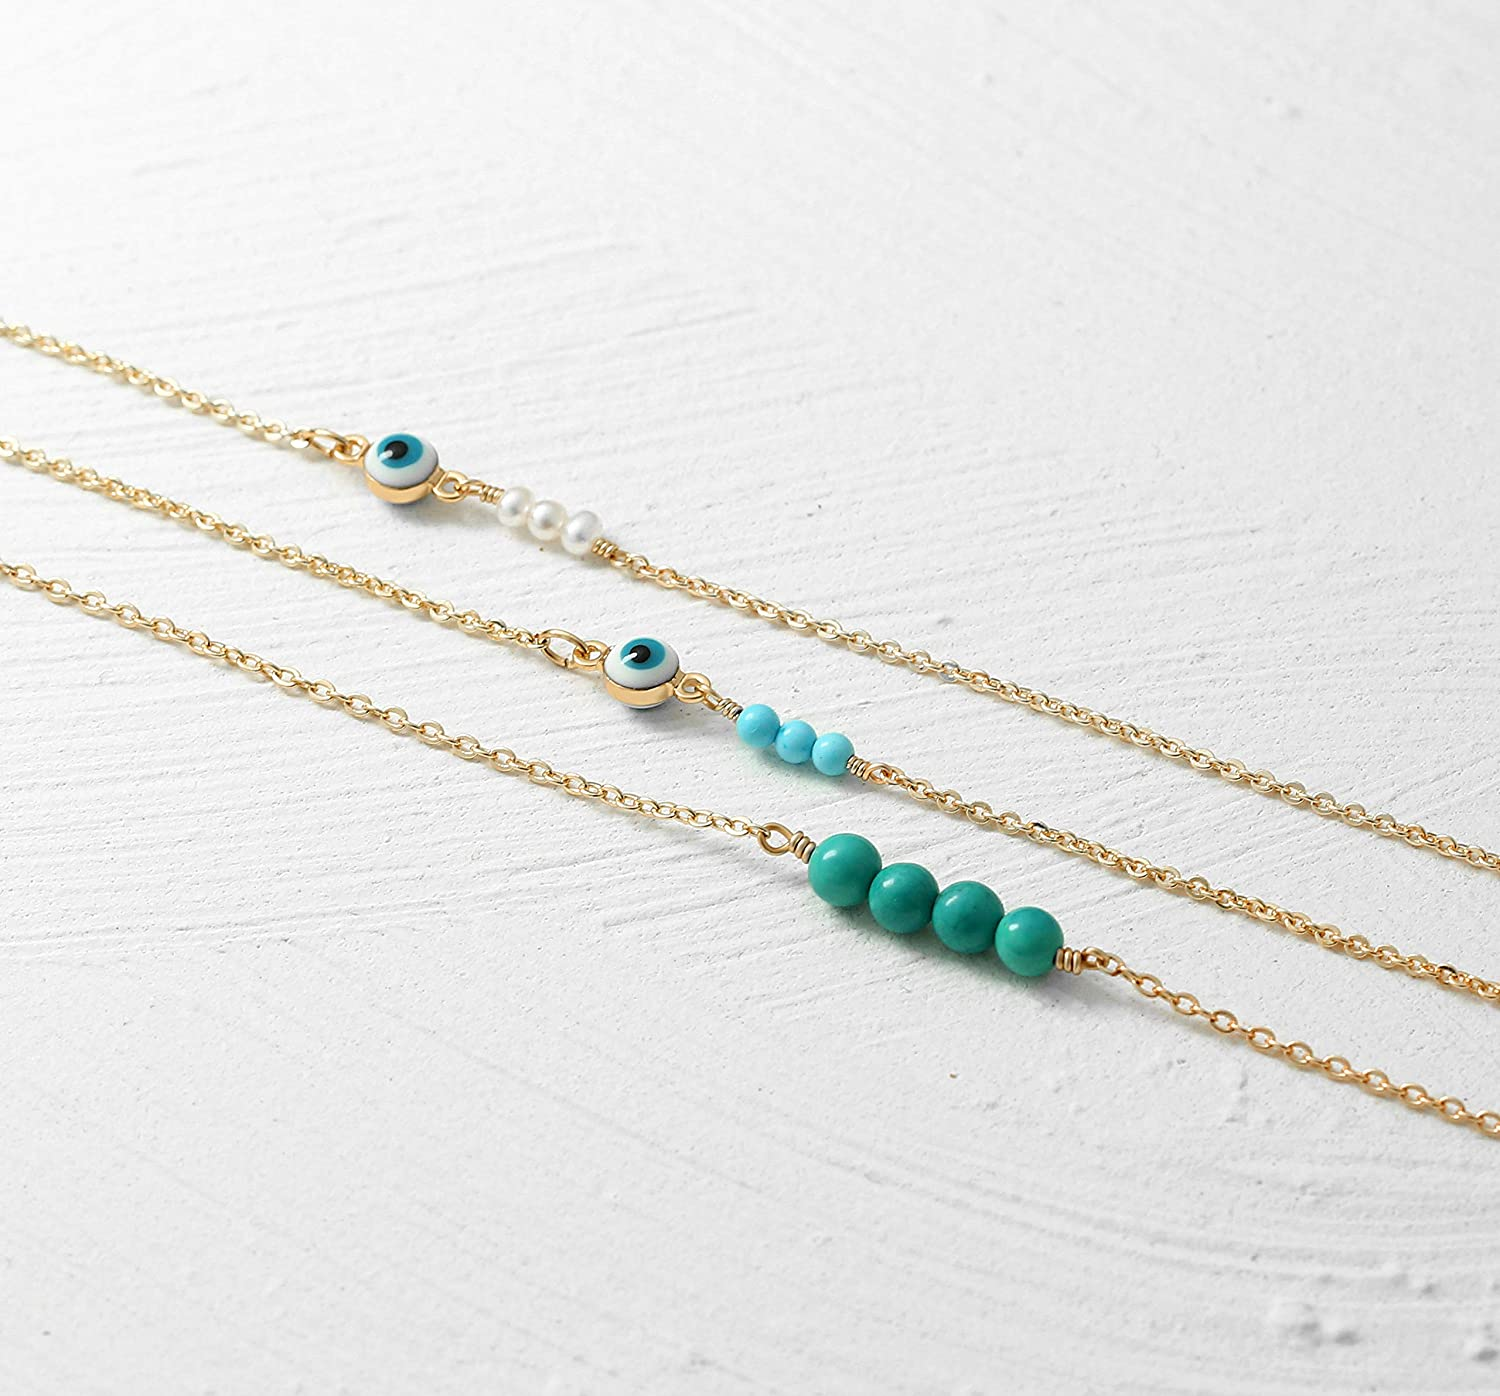 MEVECCO Dainty Evil Eye Protection Necklace,14K Gold Plated Cute Delicate Handmade Tiny Bead Necklace for Women